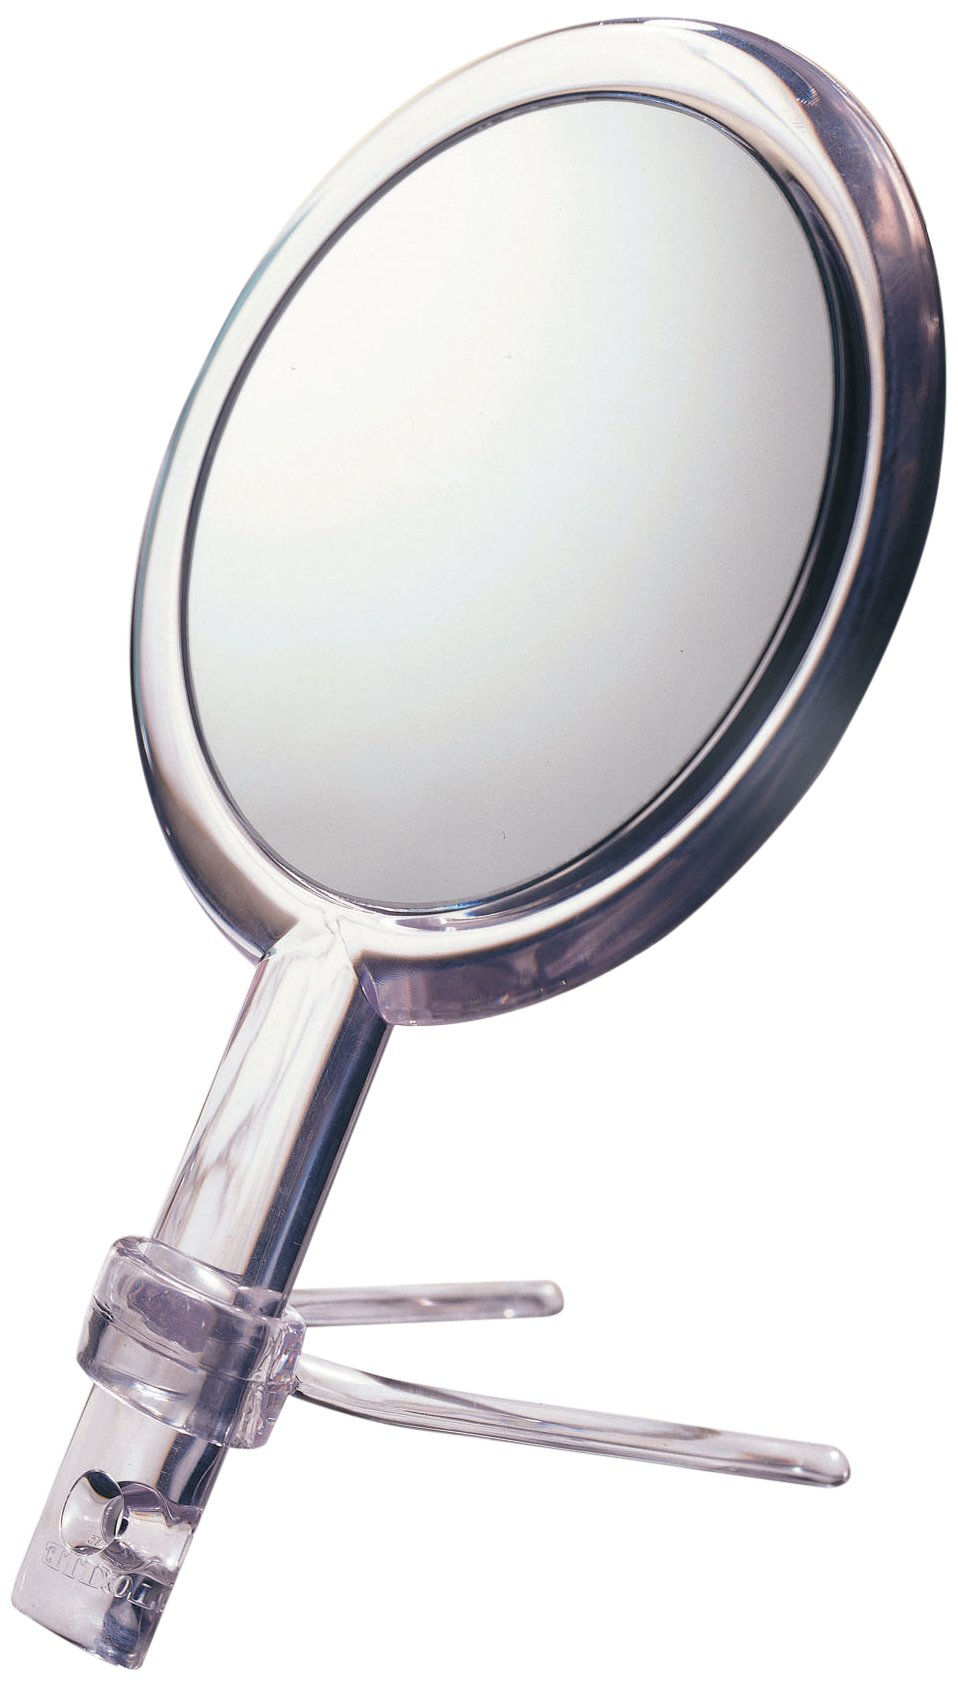 Floxite Fl-10h 10x/1x Hand Held 2-sided Mirror with Stand, Clear